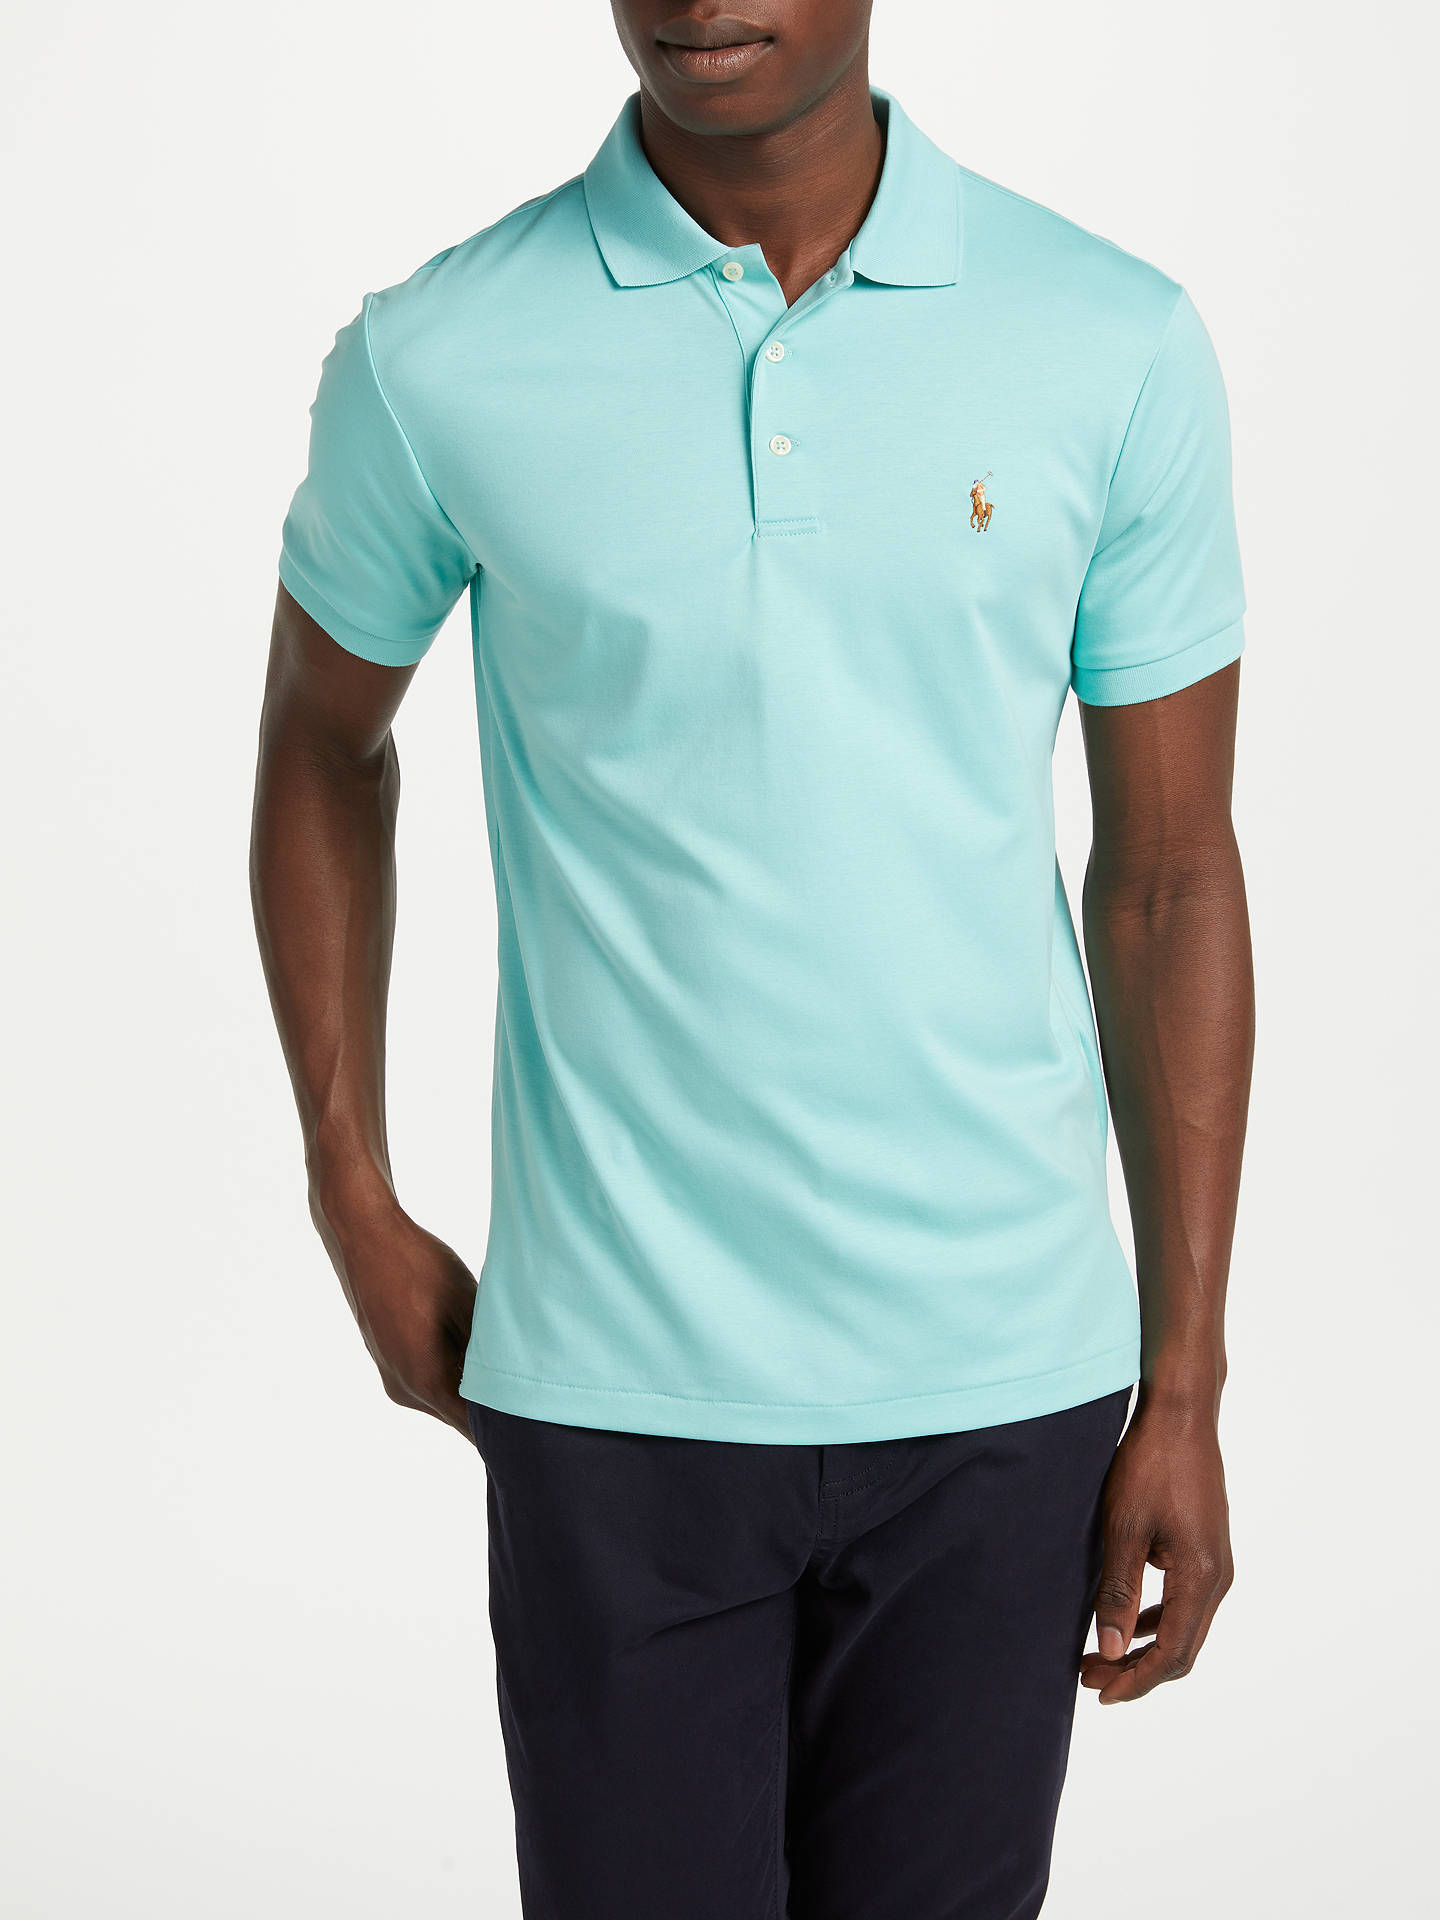 17598900217b88 Buy Polo Ralph Lauren Slim Fit Polo Shirt, Bayside Green, S Online at  johnlewis ...